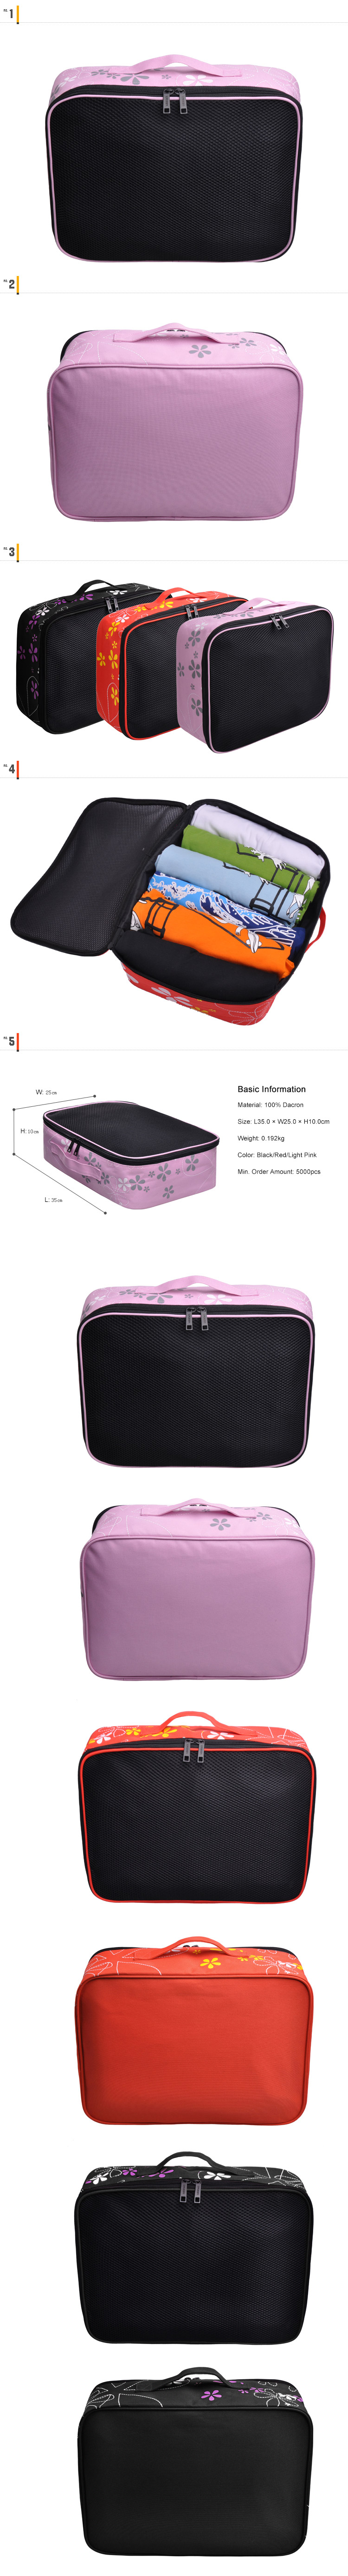 Lightweight Traveling Clothes Storage Bag